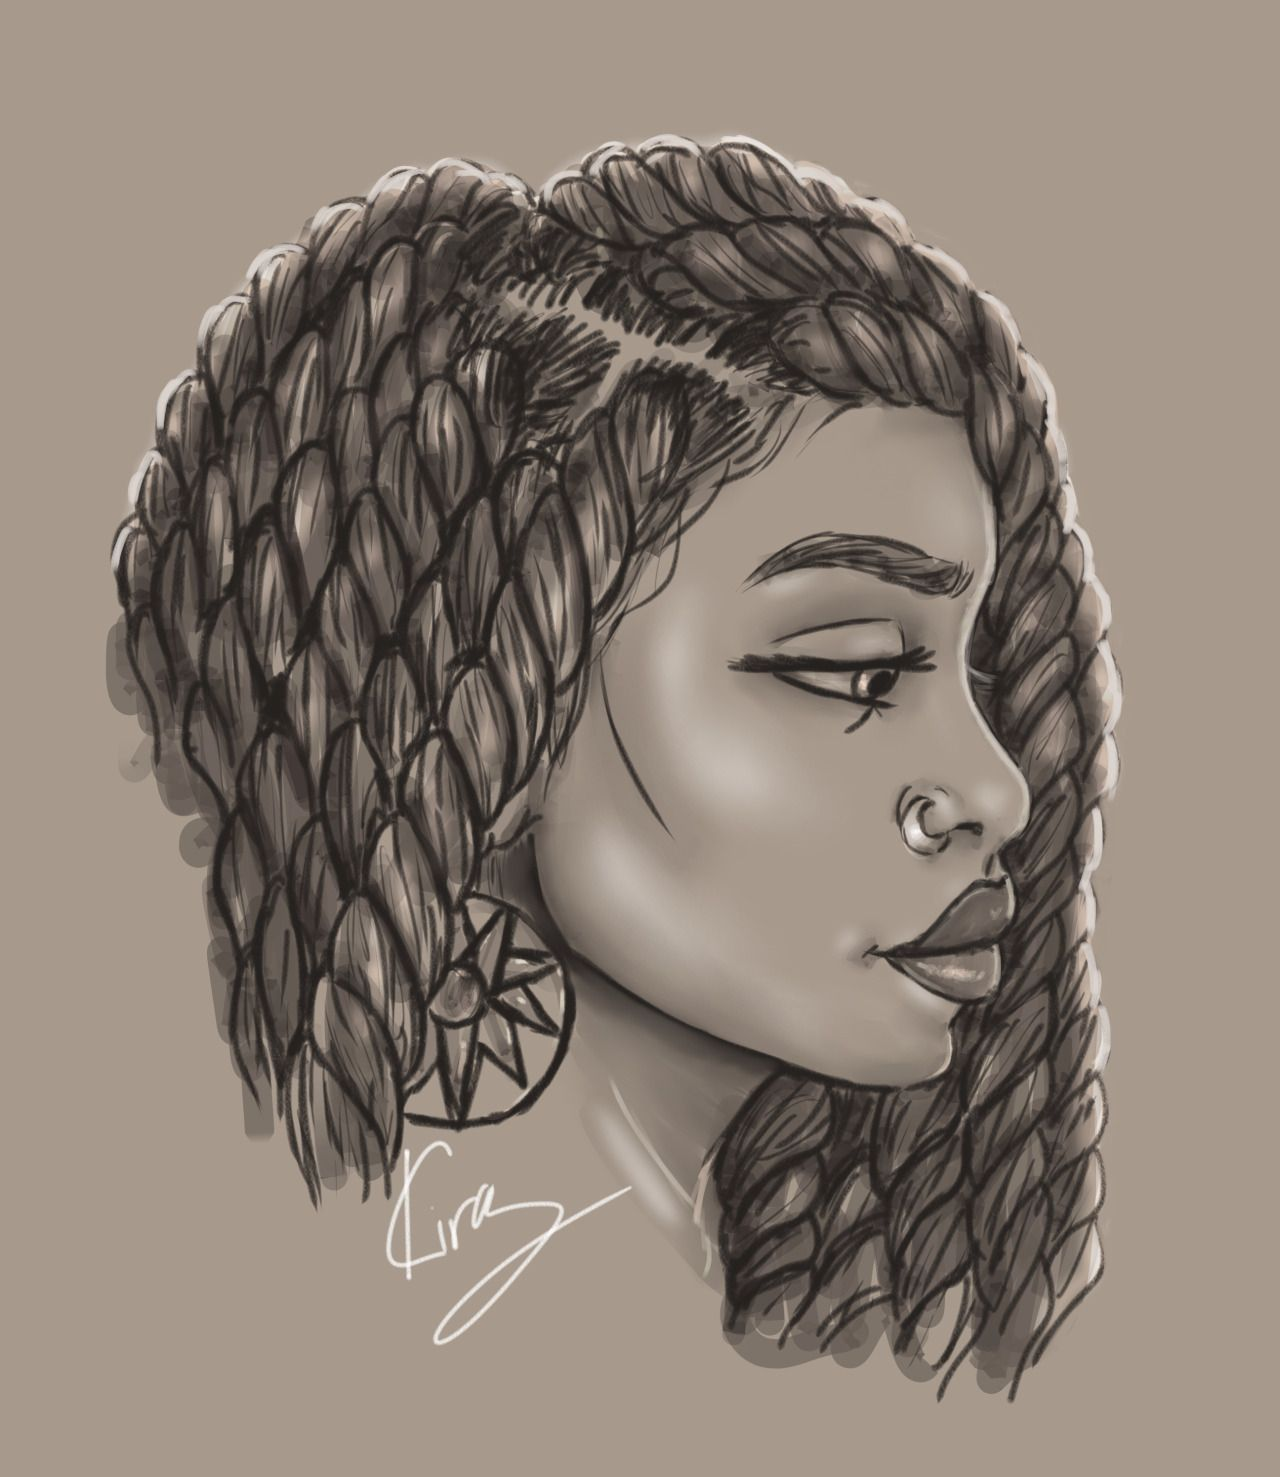 Black Women Drawings